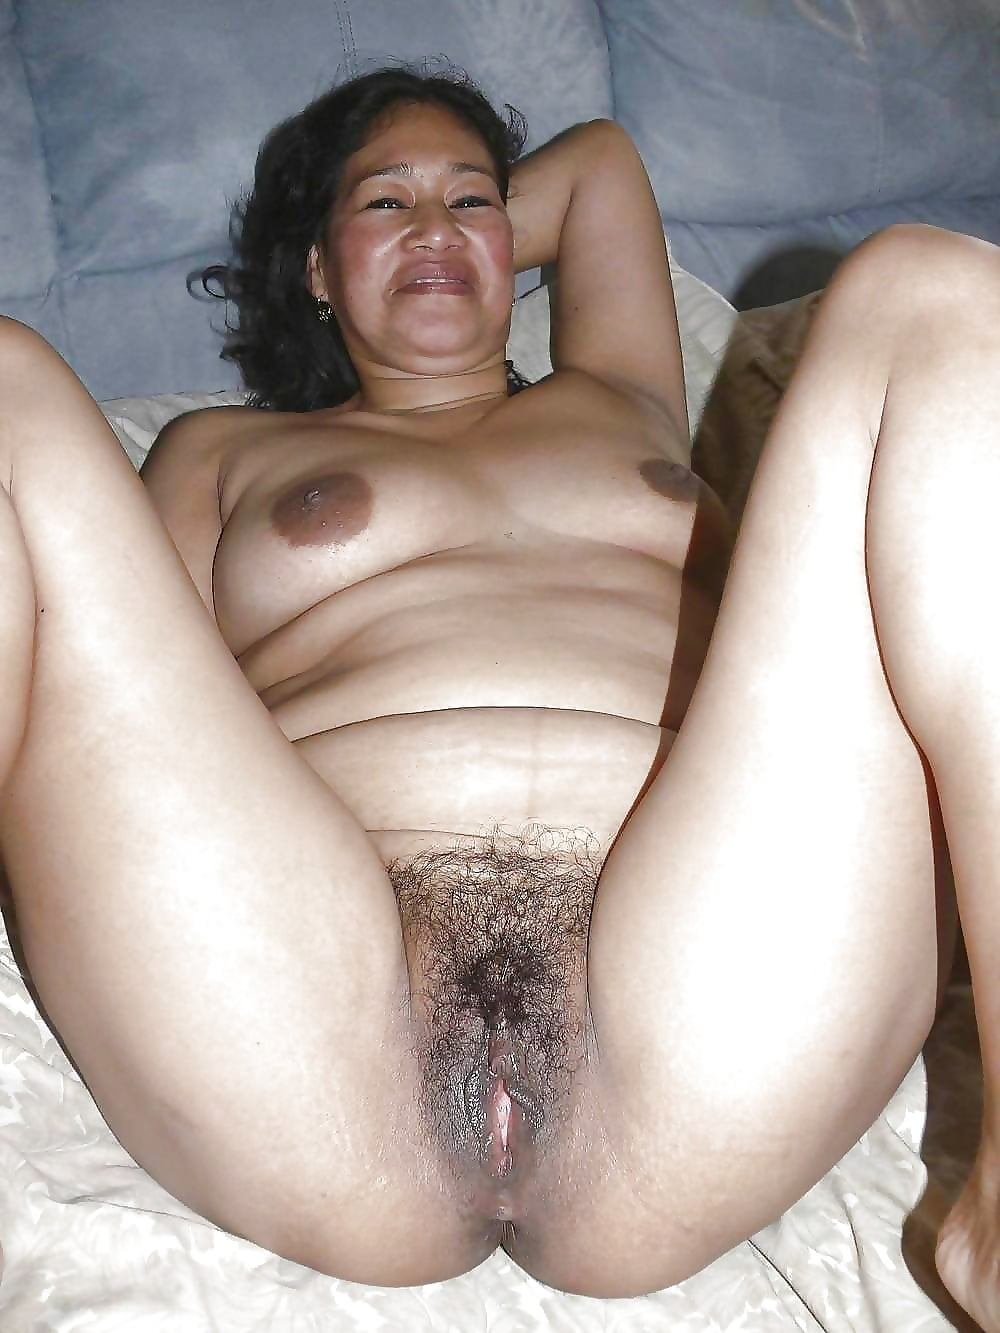 Pinay mature in nude, small lesbian porn